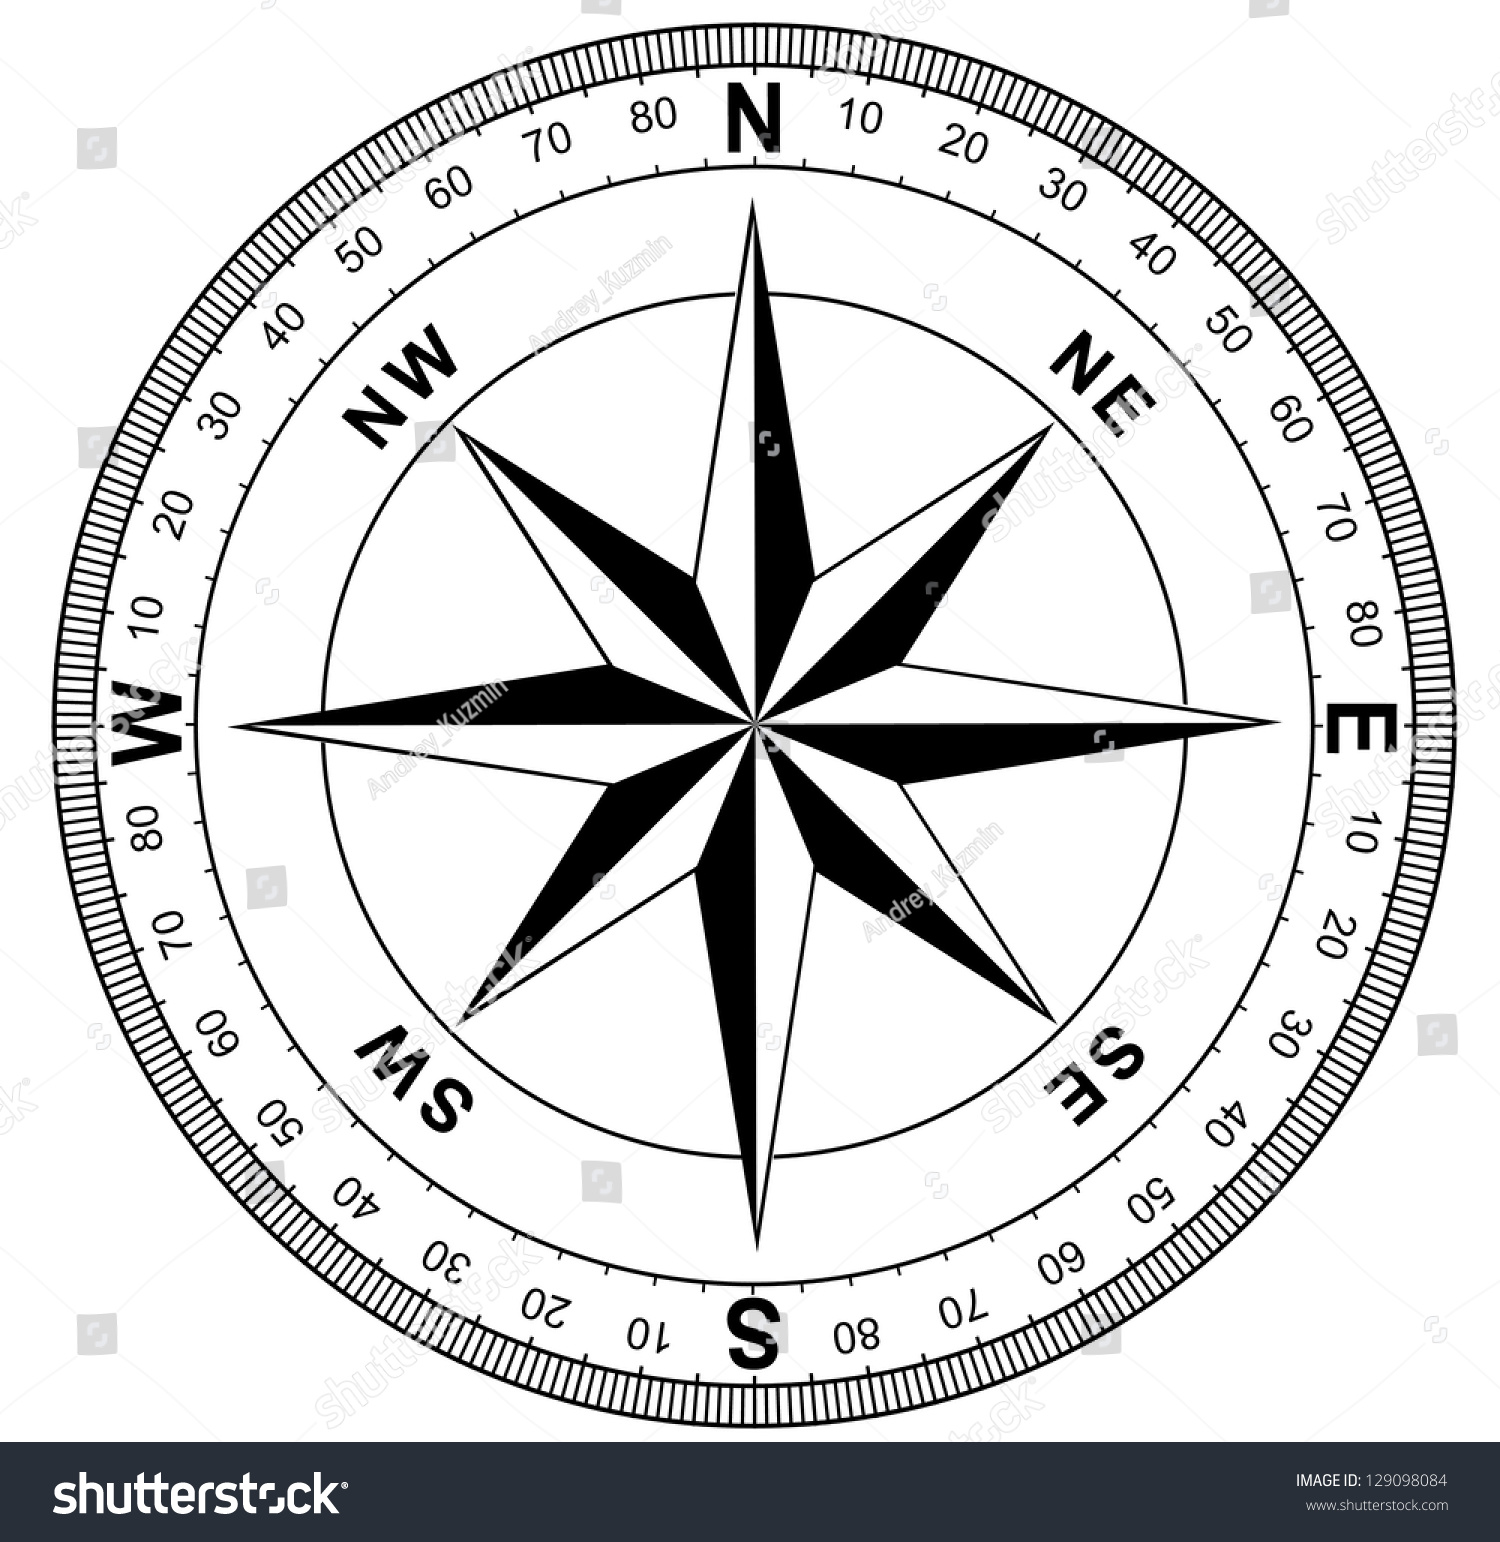 how to draw a perfect compass rose